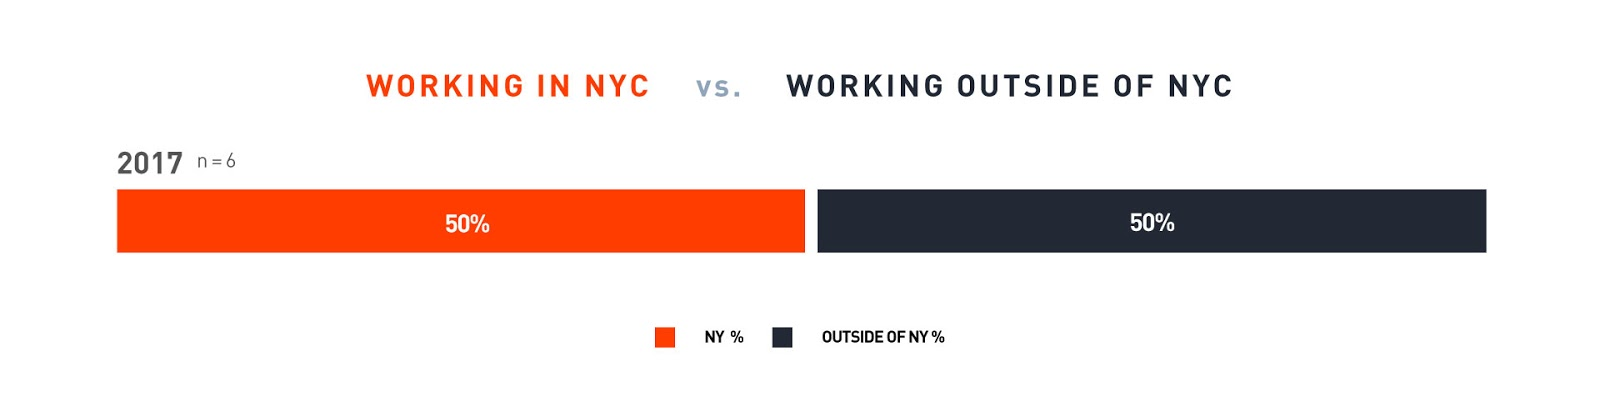 Bar-graph, paths of working-location of recent graduates (2017), 50% worked in NYC and 50% worked elsewhere.